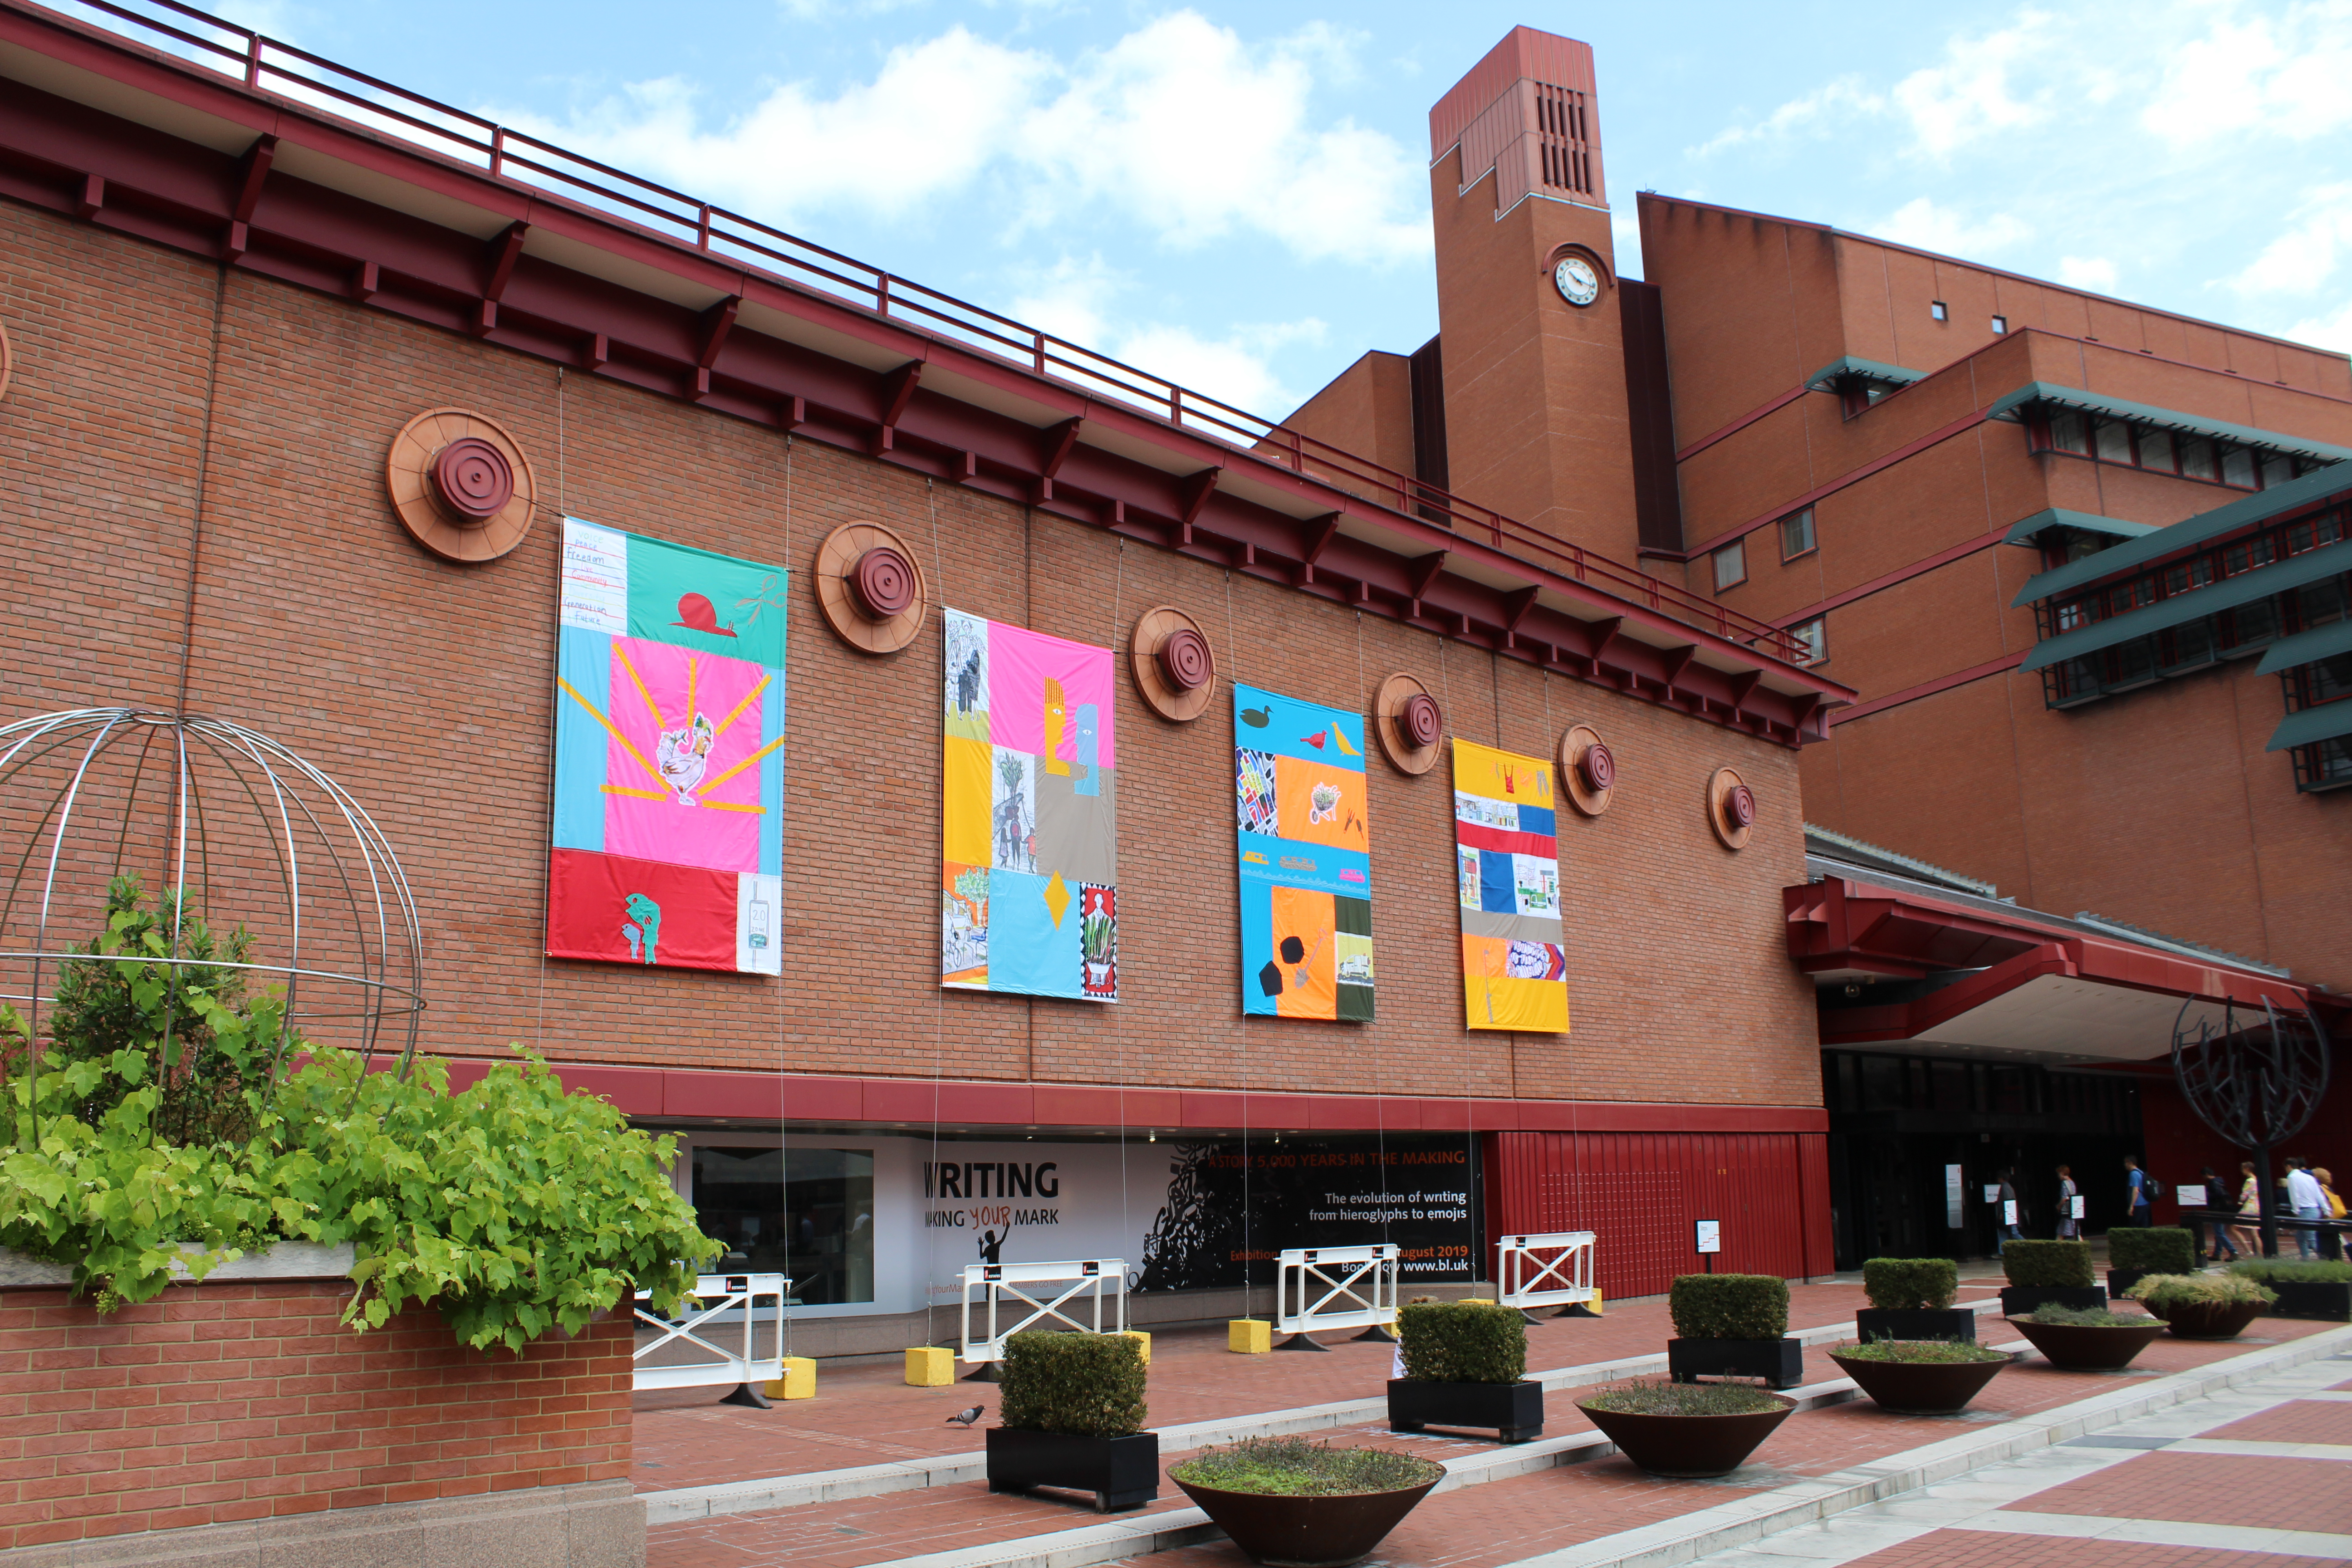 Flags created by Central Saint Martins students with local community groups hang from the British Library for Somers Town Festival